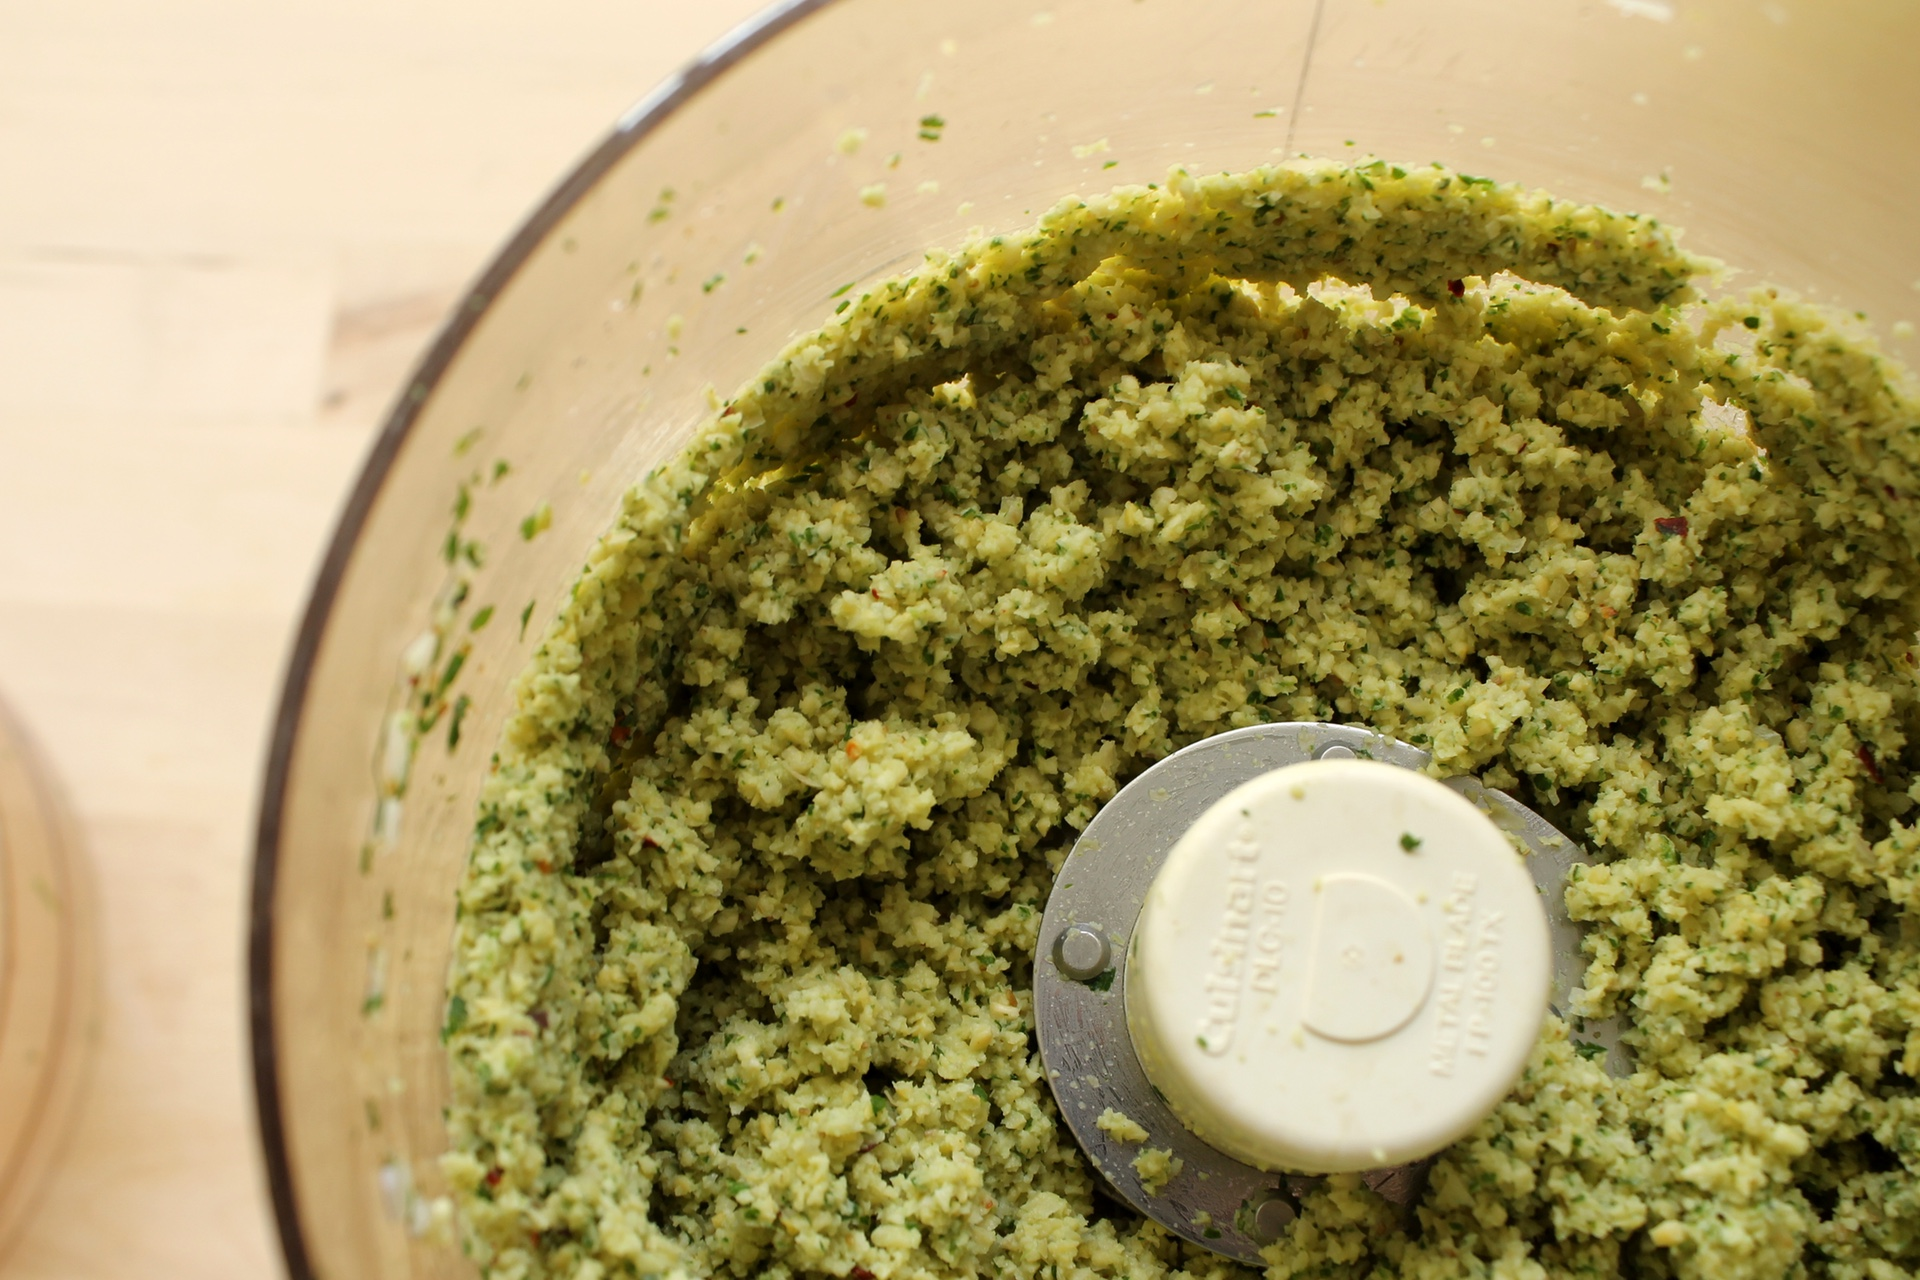 The processed falafel mixture should be a coarse paste. You want it to stick together, but you also want to have small pieces of chickpeas throughout.